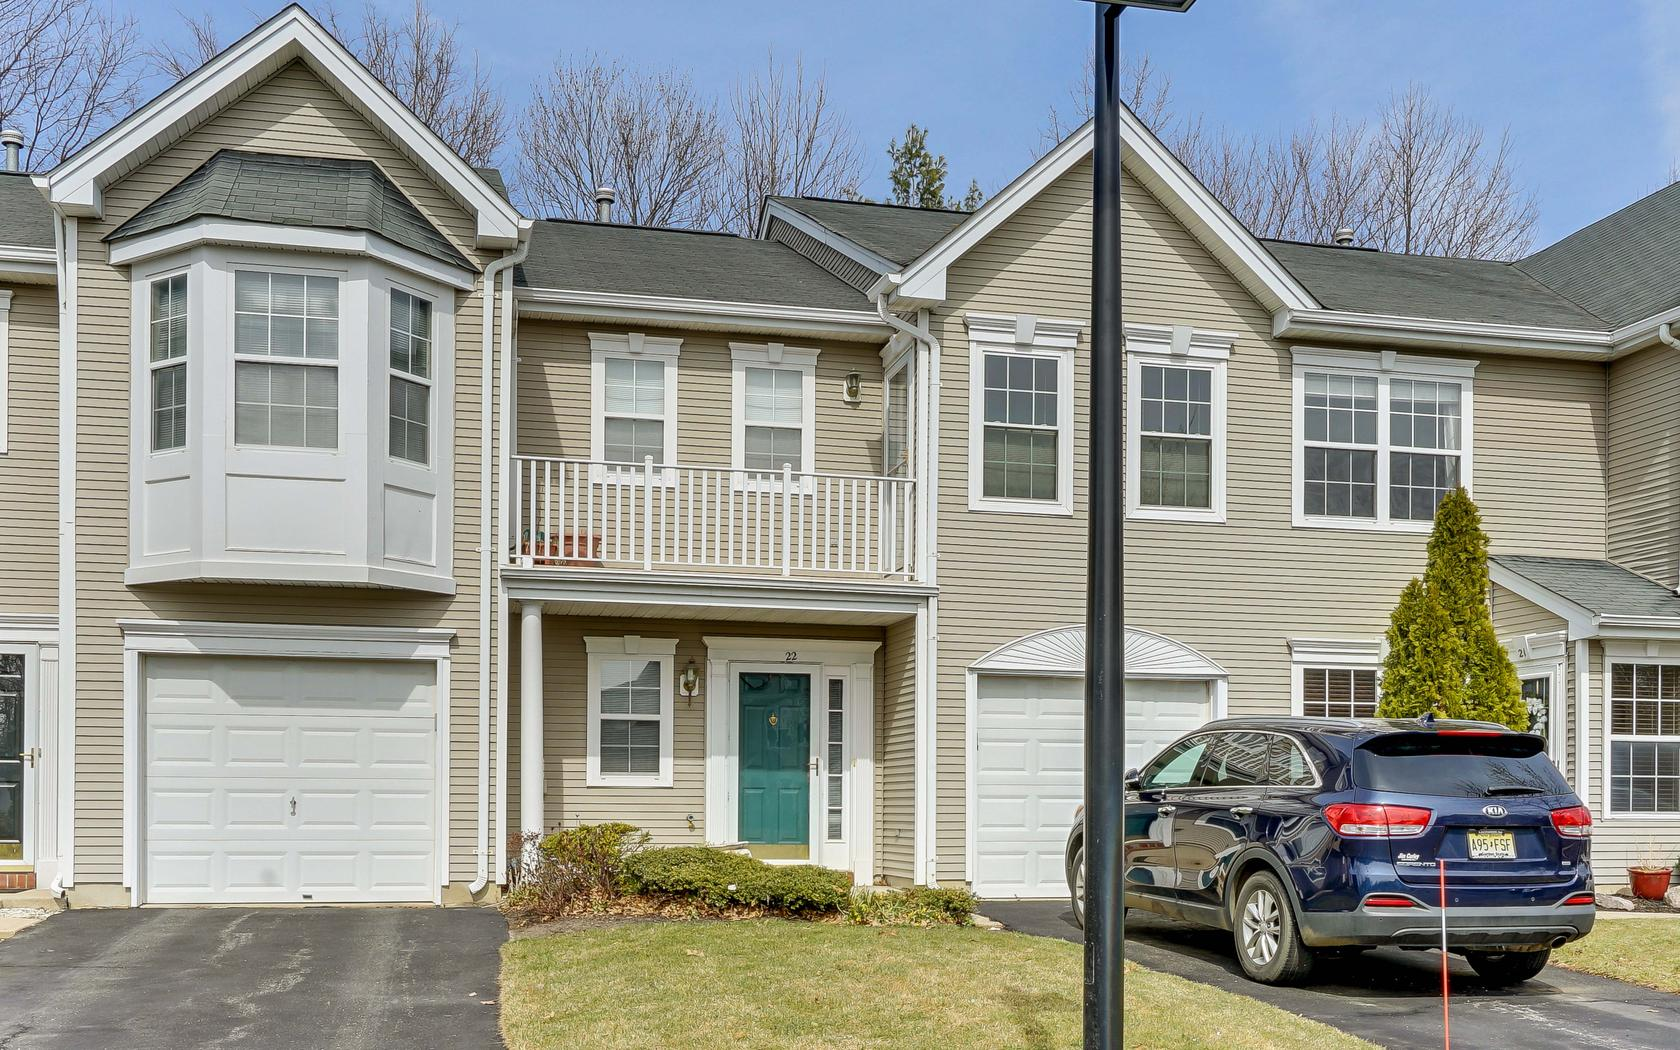 Single Family Home for Sale at Country Village 22 Picket Place 1000 Howell, New Jersey, 07728 United States